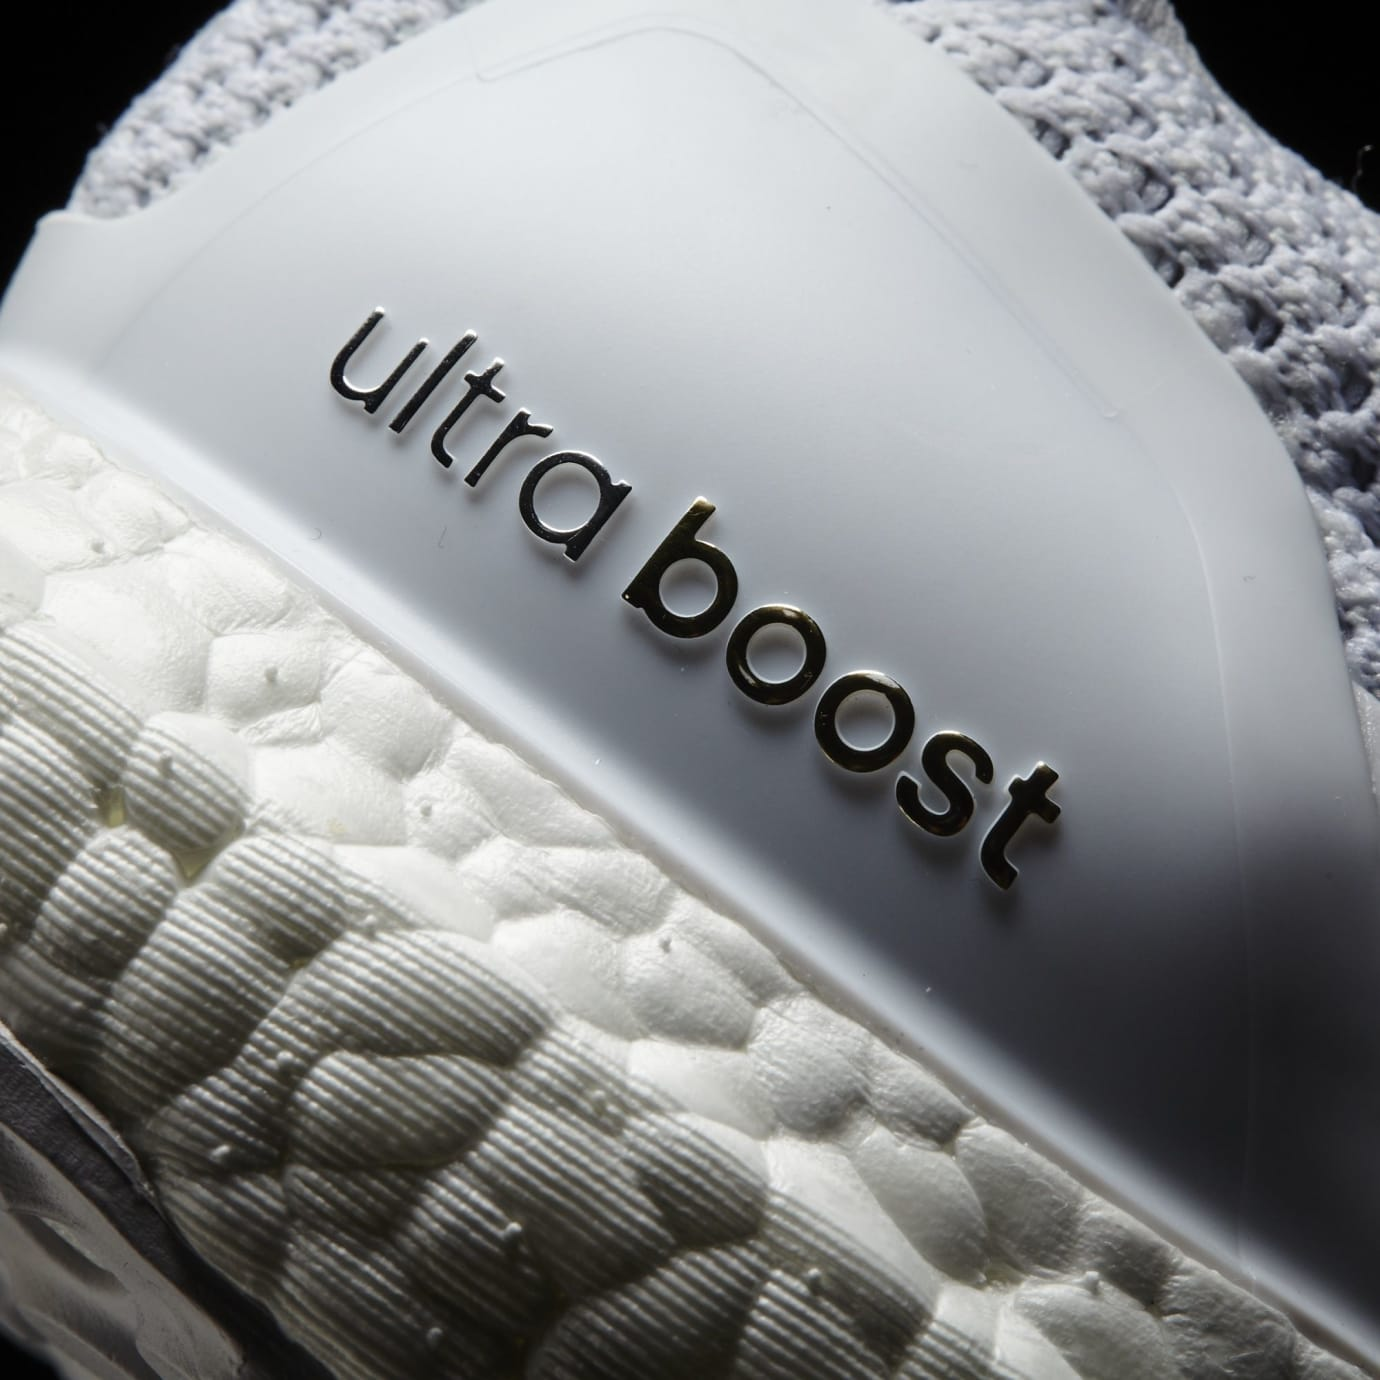 fc67559ce07c1 Image via Adidas Adidas Ultra Boost 2.0 White Reflective 2018 Release Date  BB3928 Counter